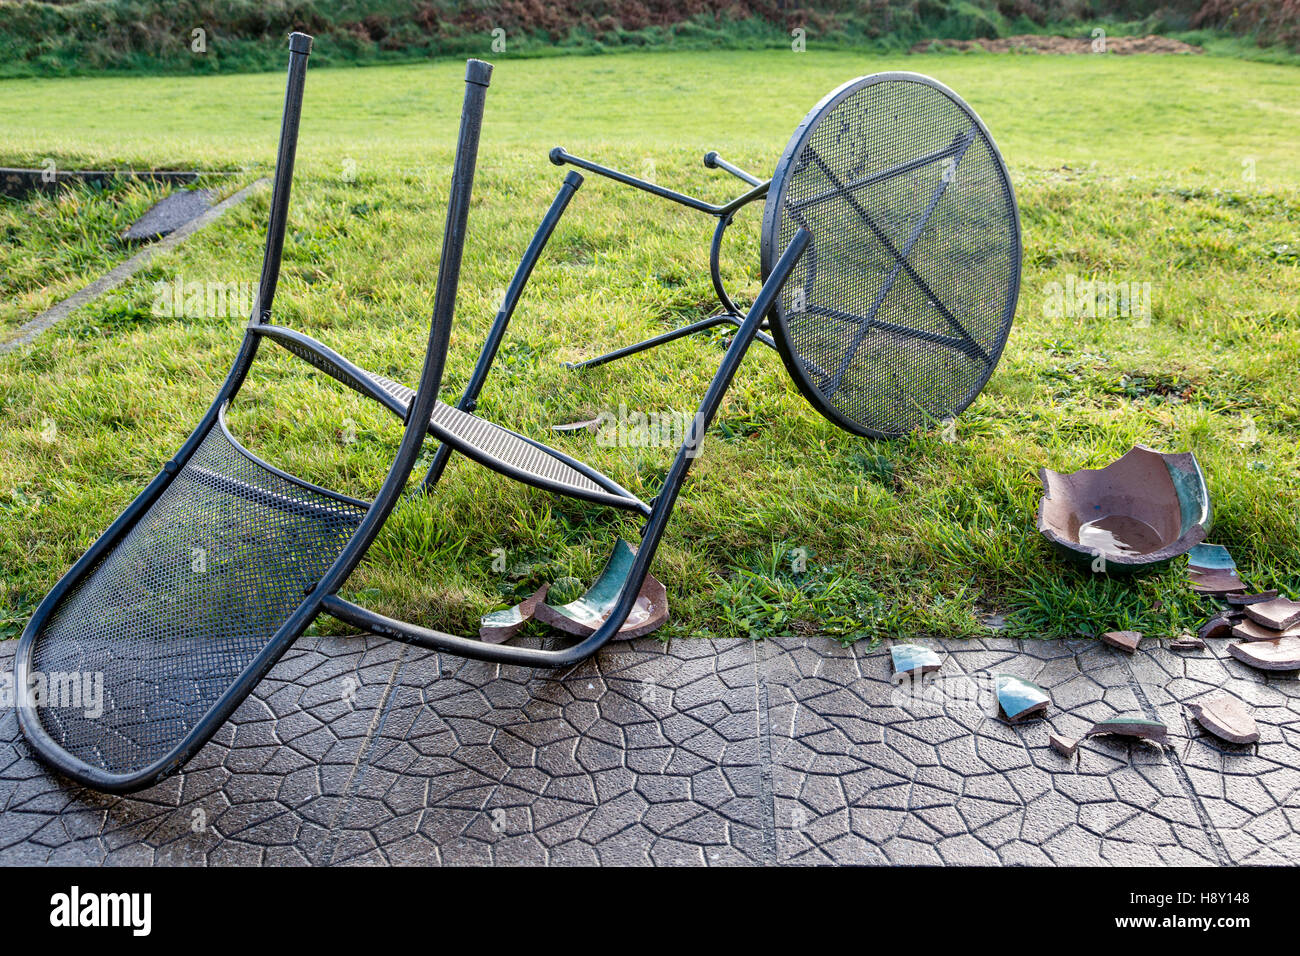 Blown Over Garden Table And Chairs And Broken Ceramic Plant Pot, Caused By  High Winds. Valentia Island, County Kerry Ireland.